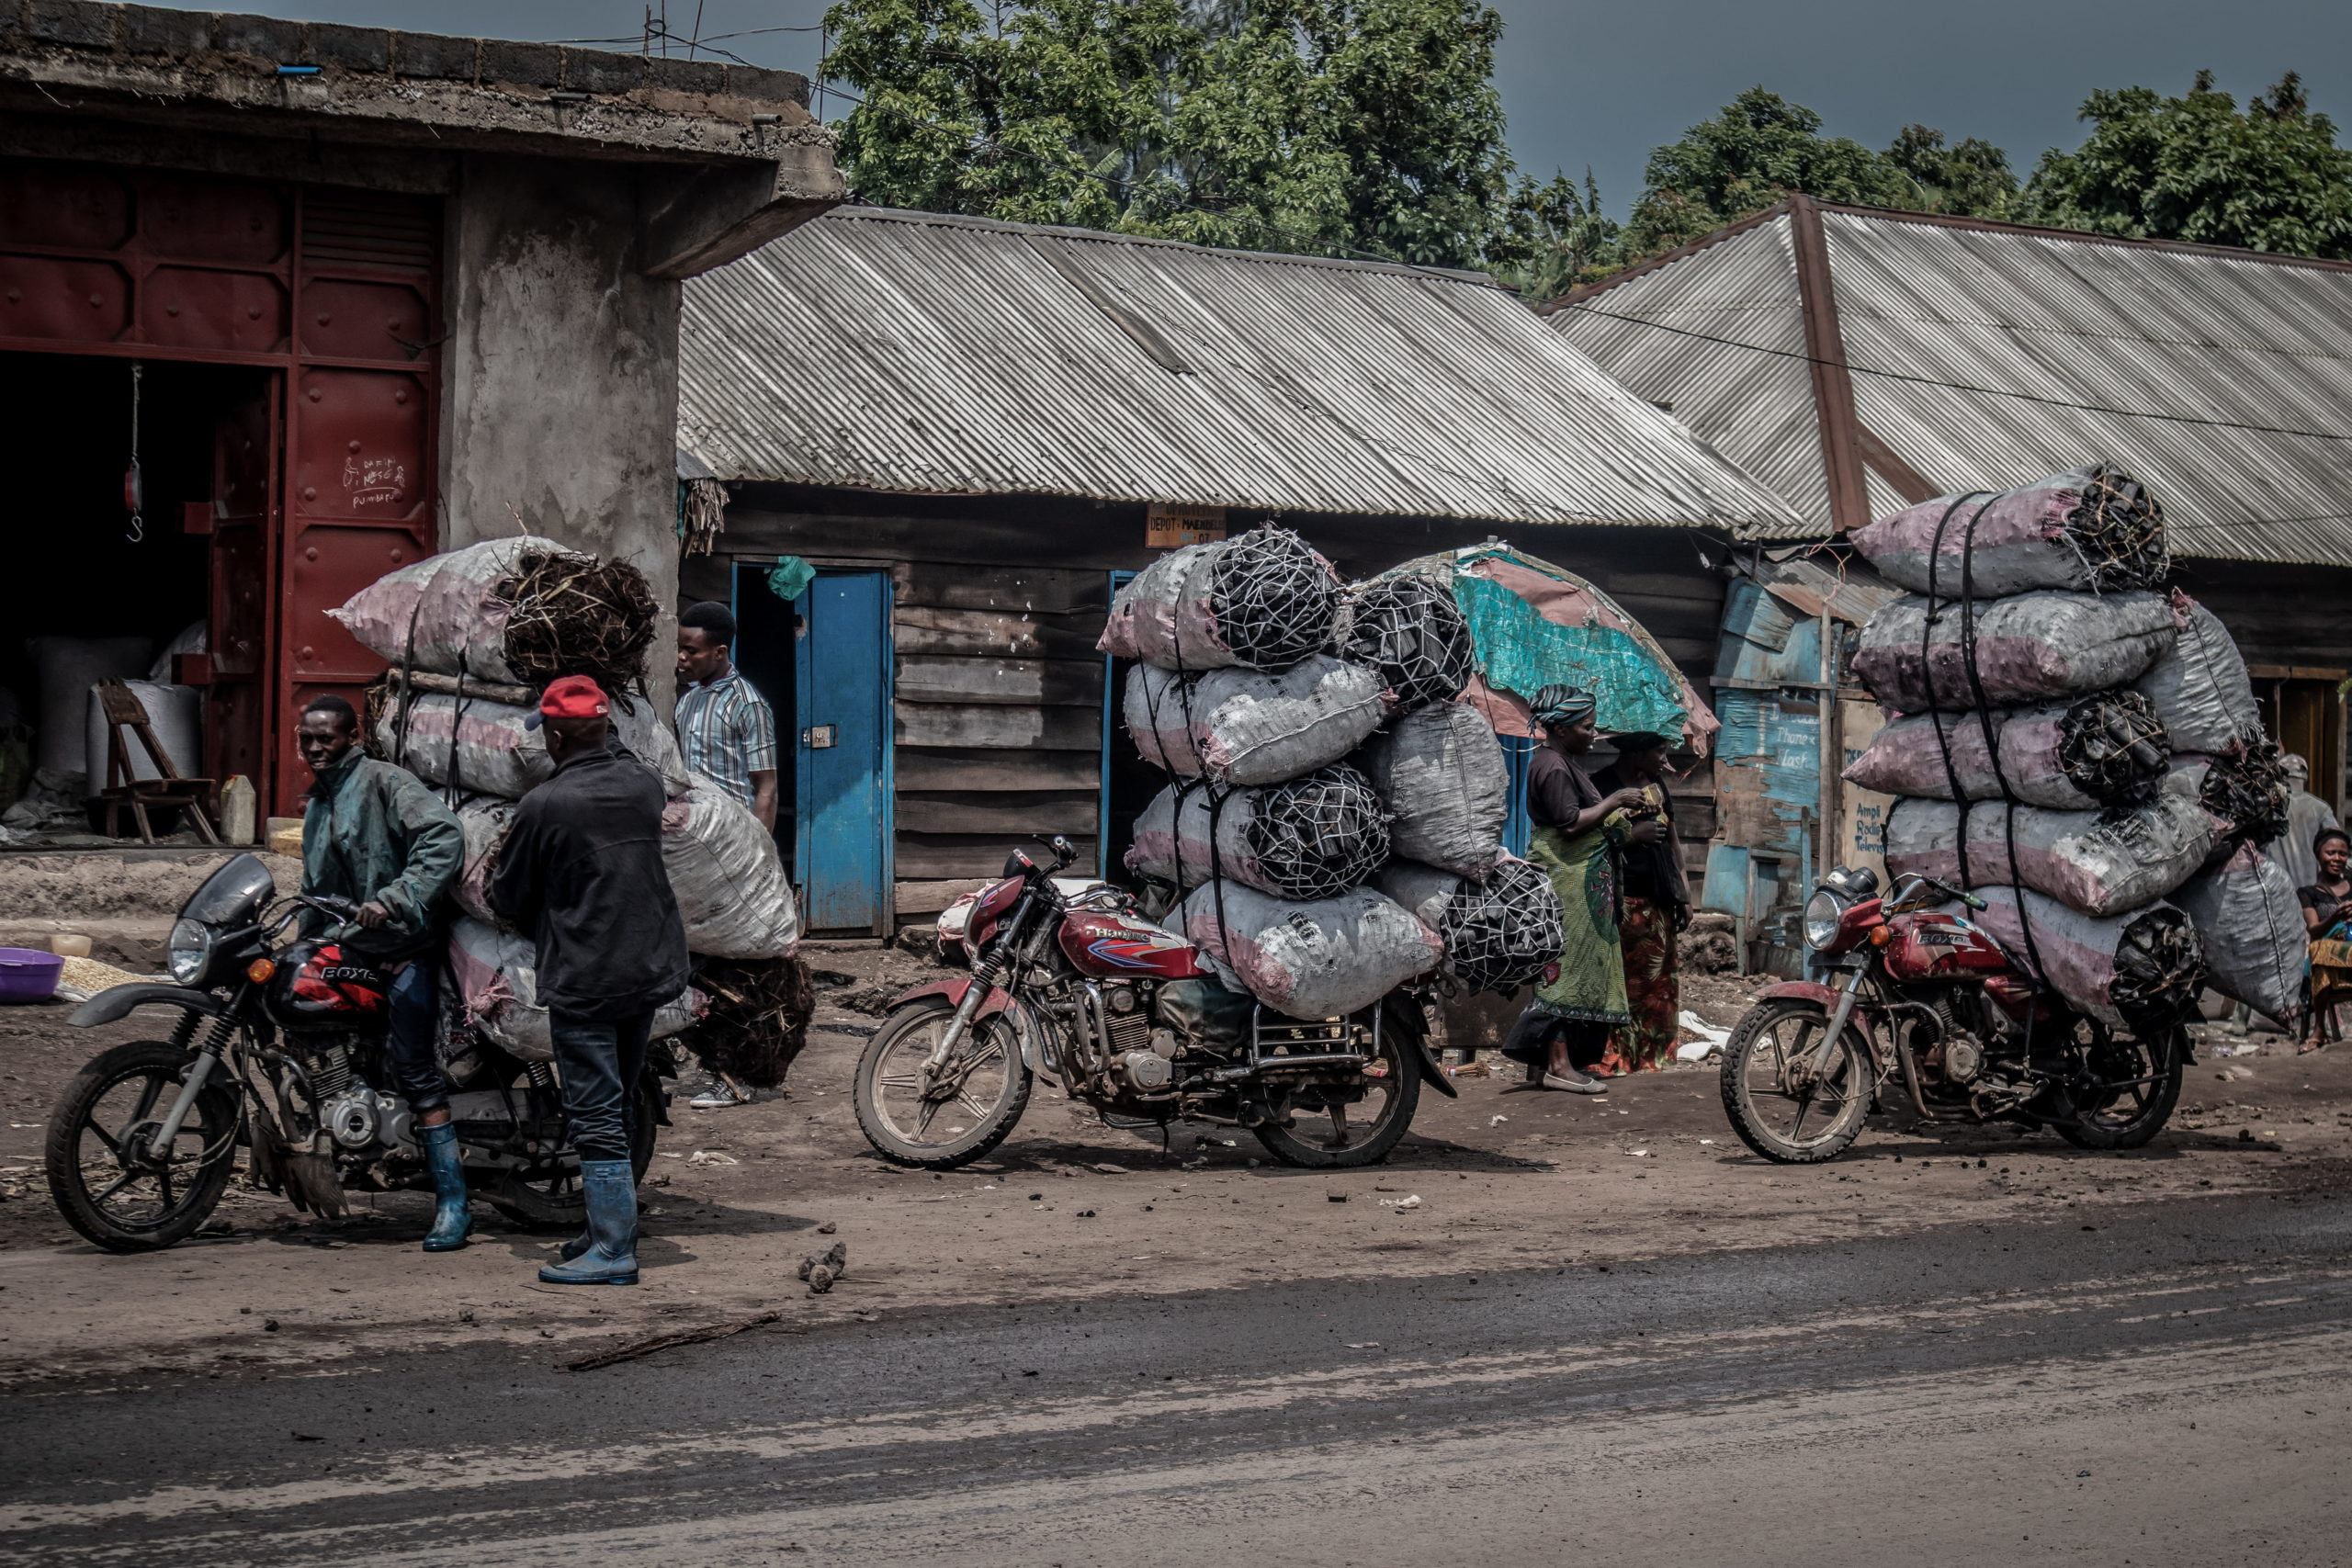 Goma, Nord-Kivu, DRC, December 2020. Motorcycle riders transport hundreds of kilos of charcoal on their bikes in the eastern Congolese city of Goma. © Guerchom Ndebo for Fondation Carmignac